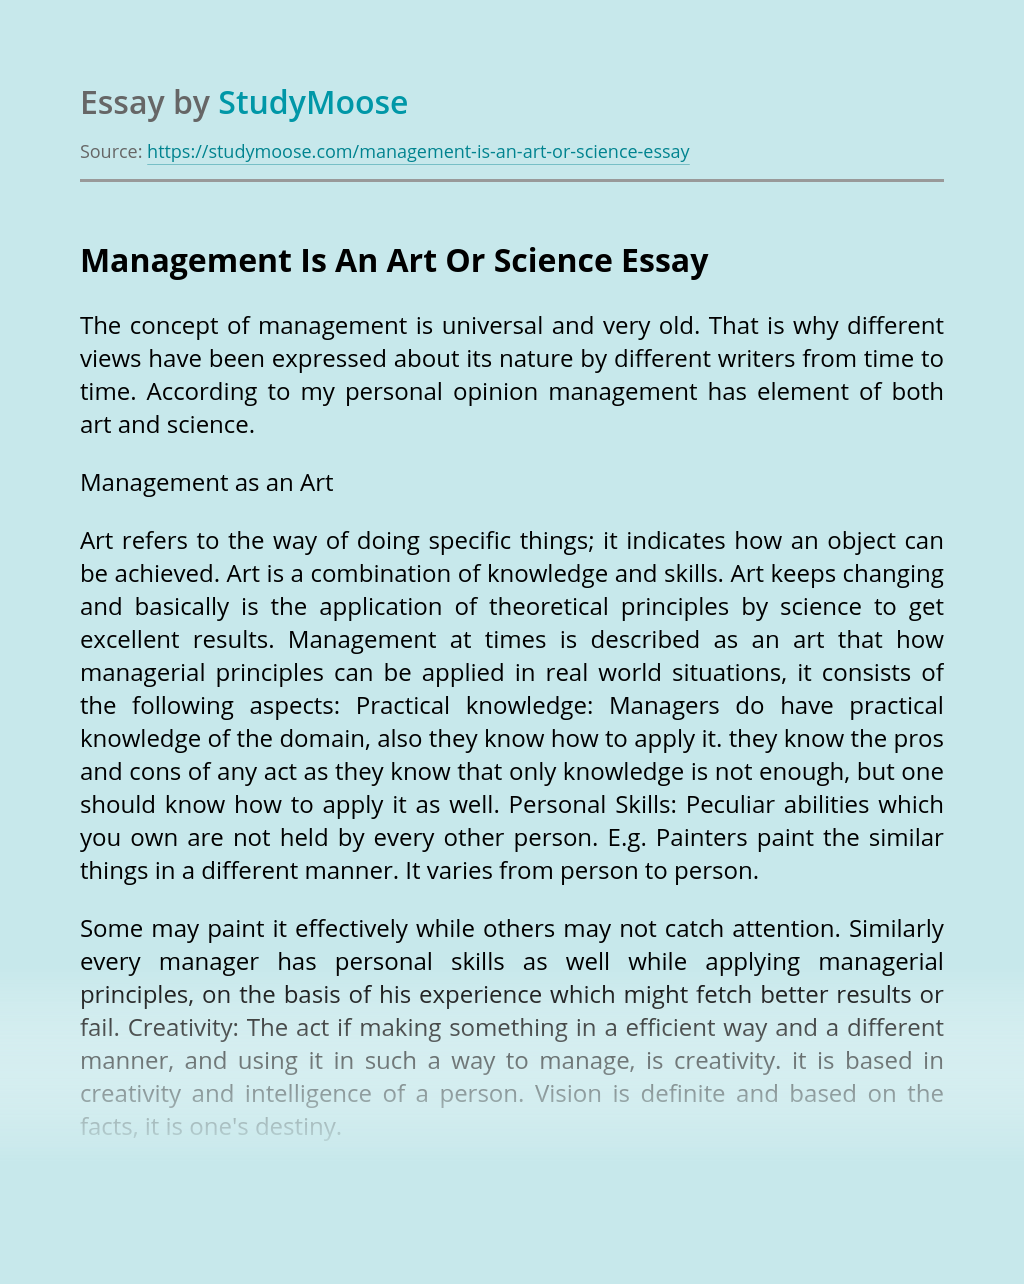 Management Is An Art Or Science